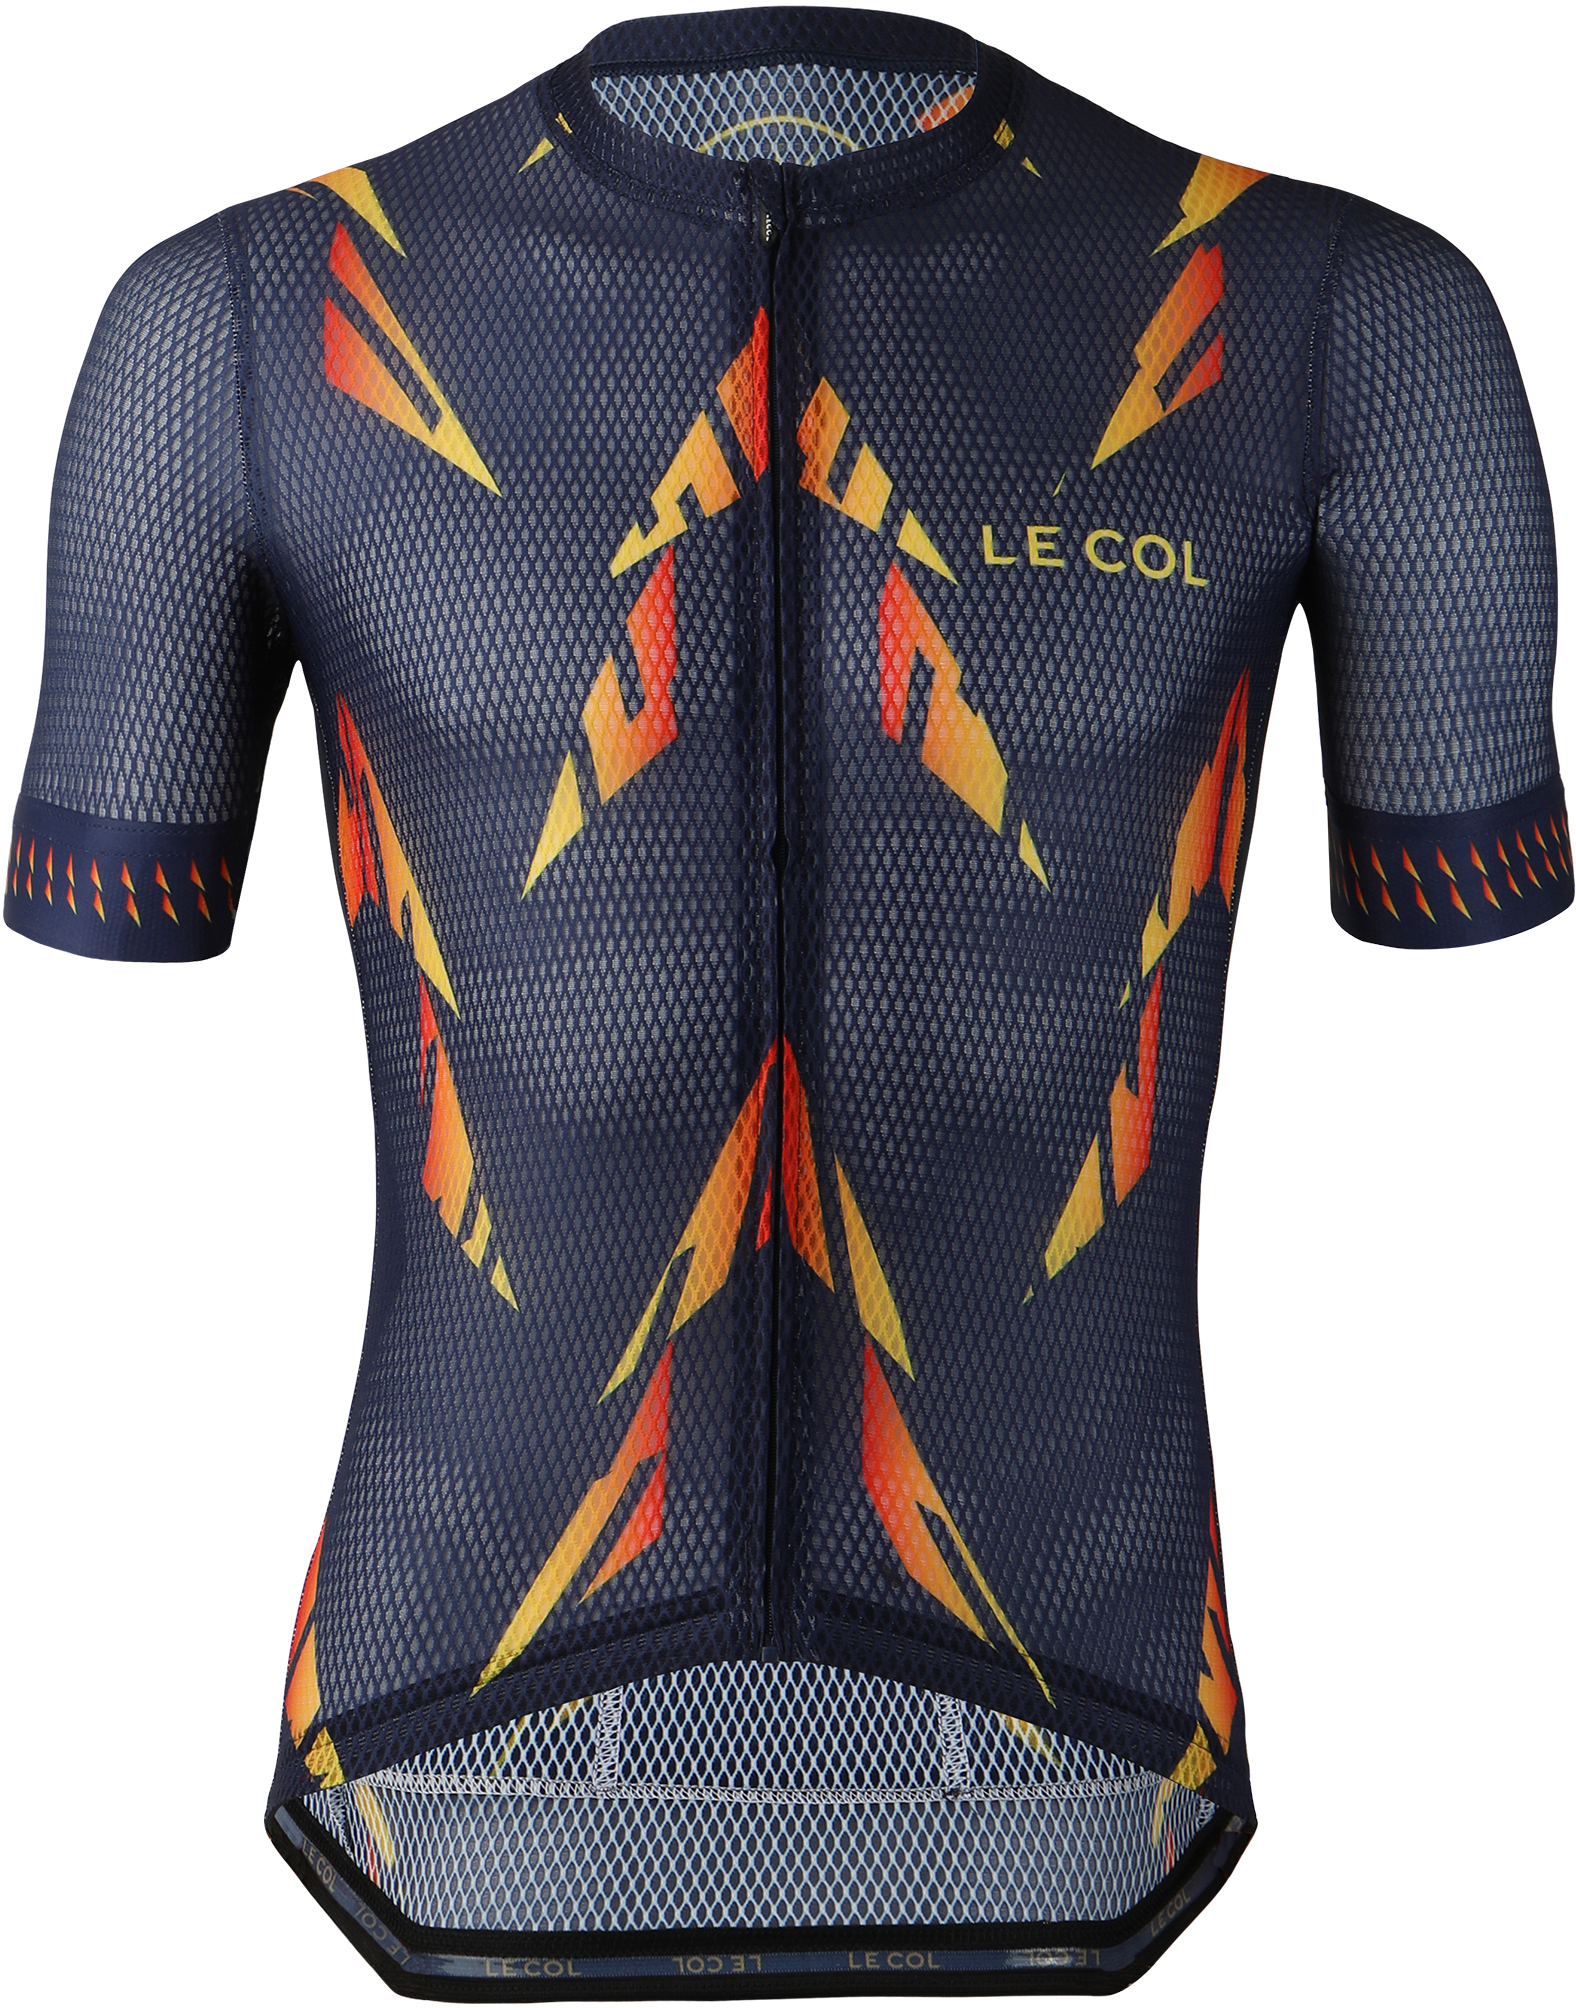 Le Col Exclusive Pro Air Jersey | Jerseys